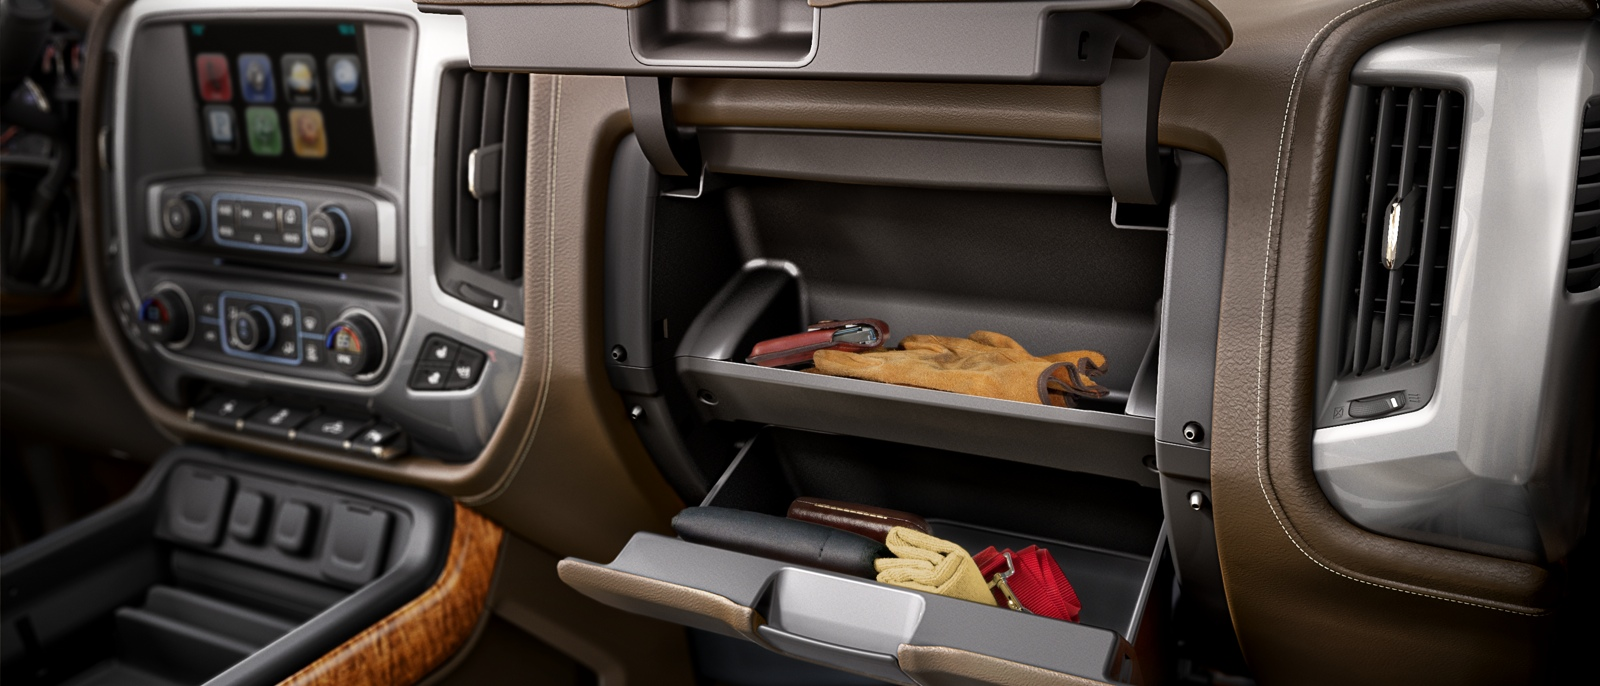 2015 Chevrolet Silverado 2500 Interior ... Idea